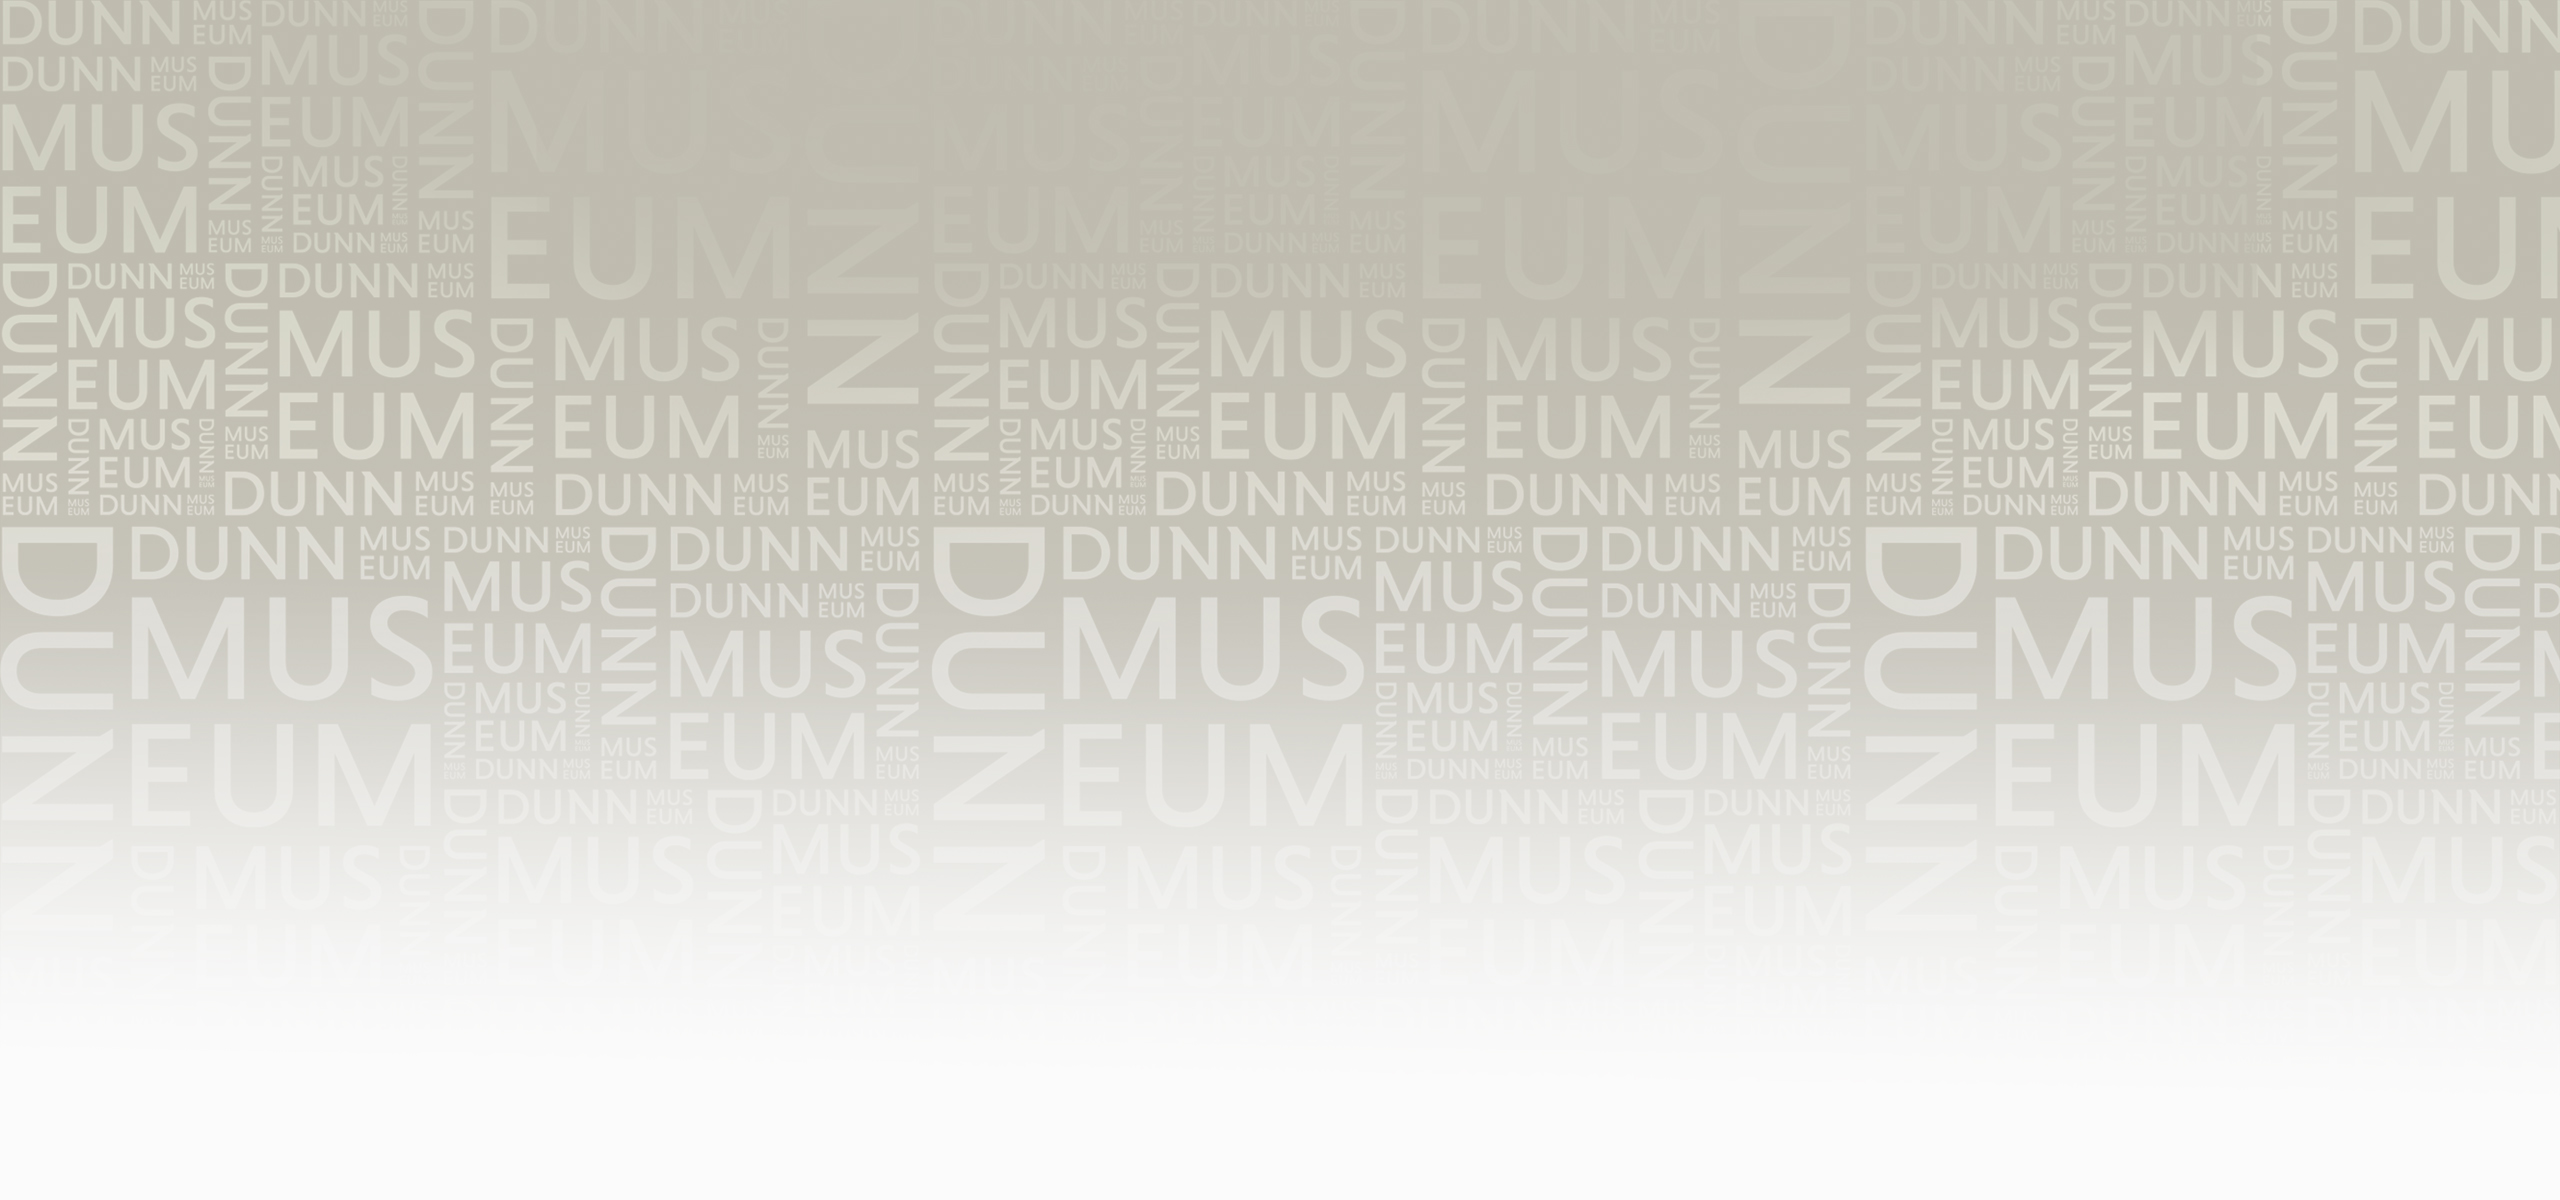 Background image with Dunn Museum Logo